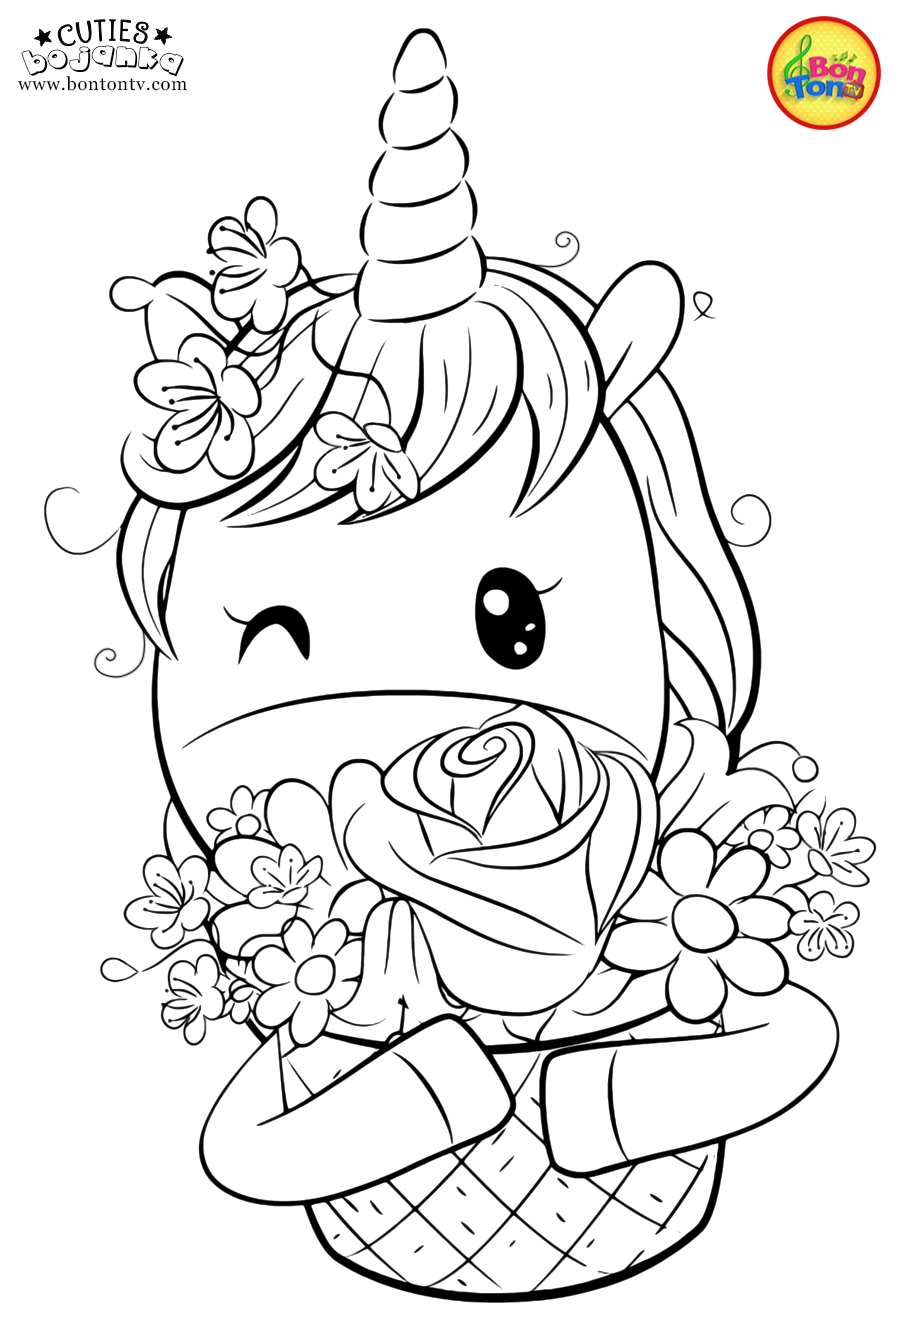 Most Up To Date Free Of Charge Coloring Books For Preschool Suggestions Here Is The Greatest H In 2021 Unicorn Coloring Pages Cute Coloring Pages Disney Coloring Pages [ 1321 x 915 Pixel ]